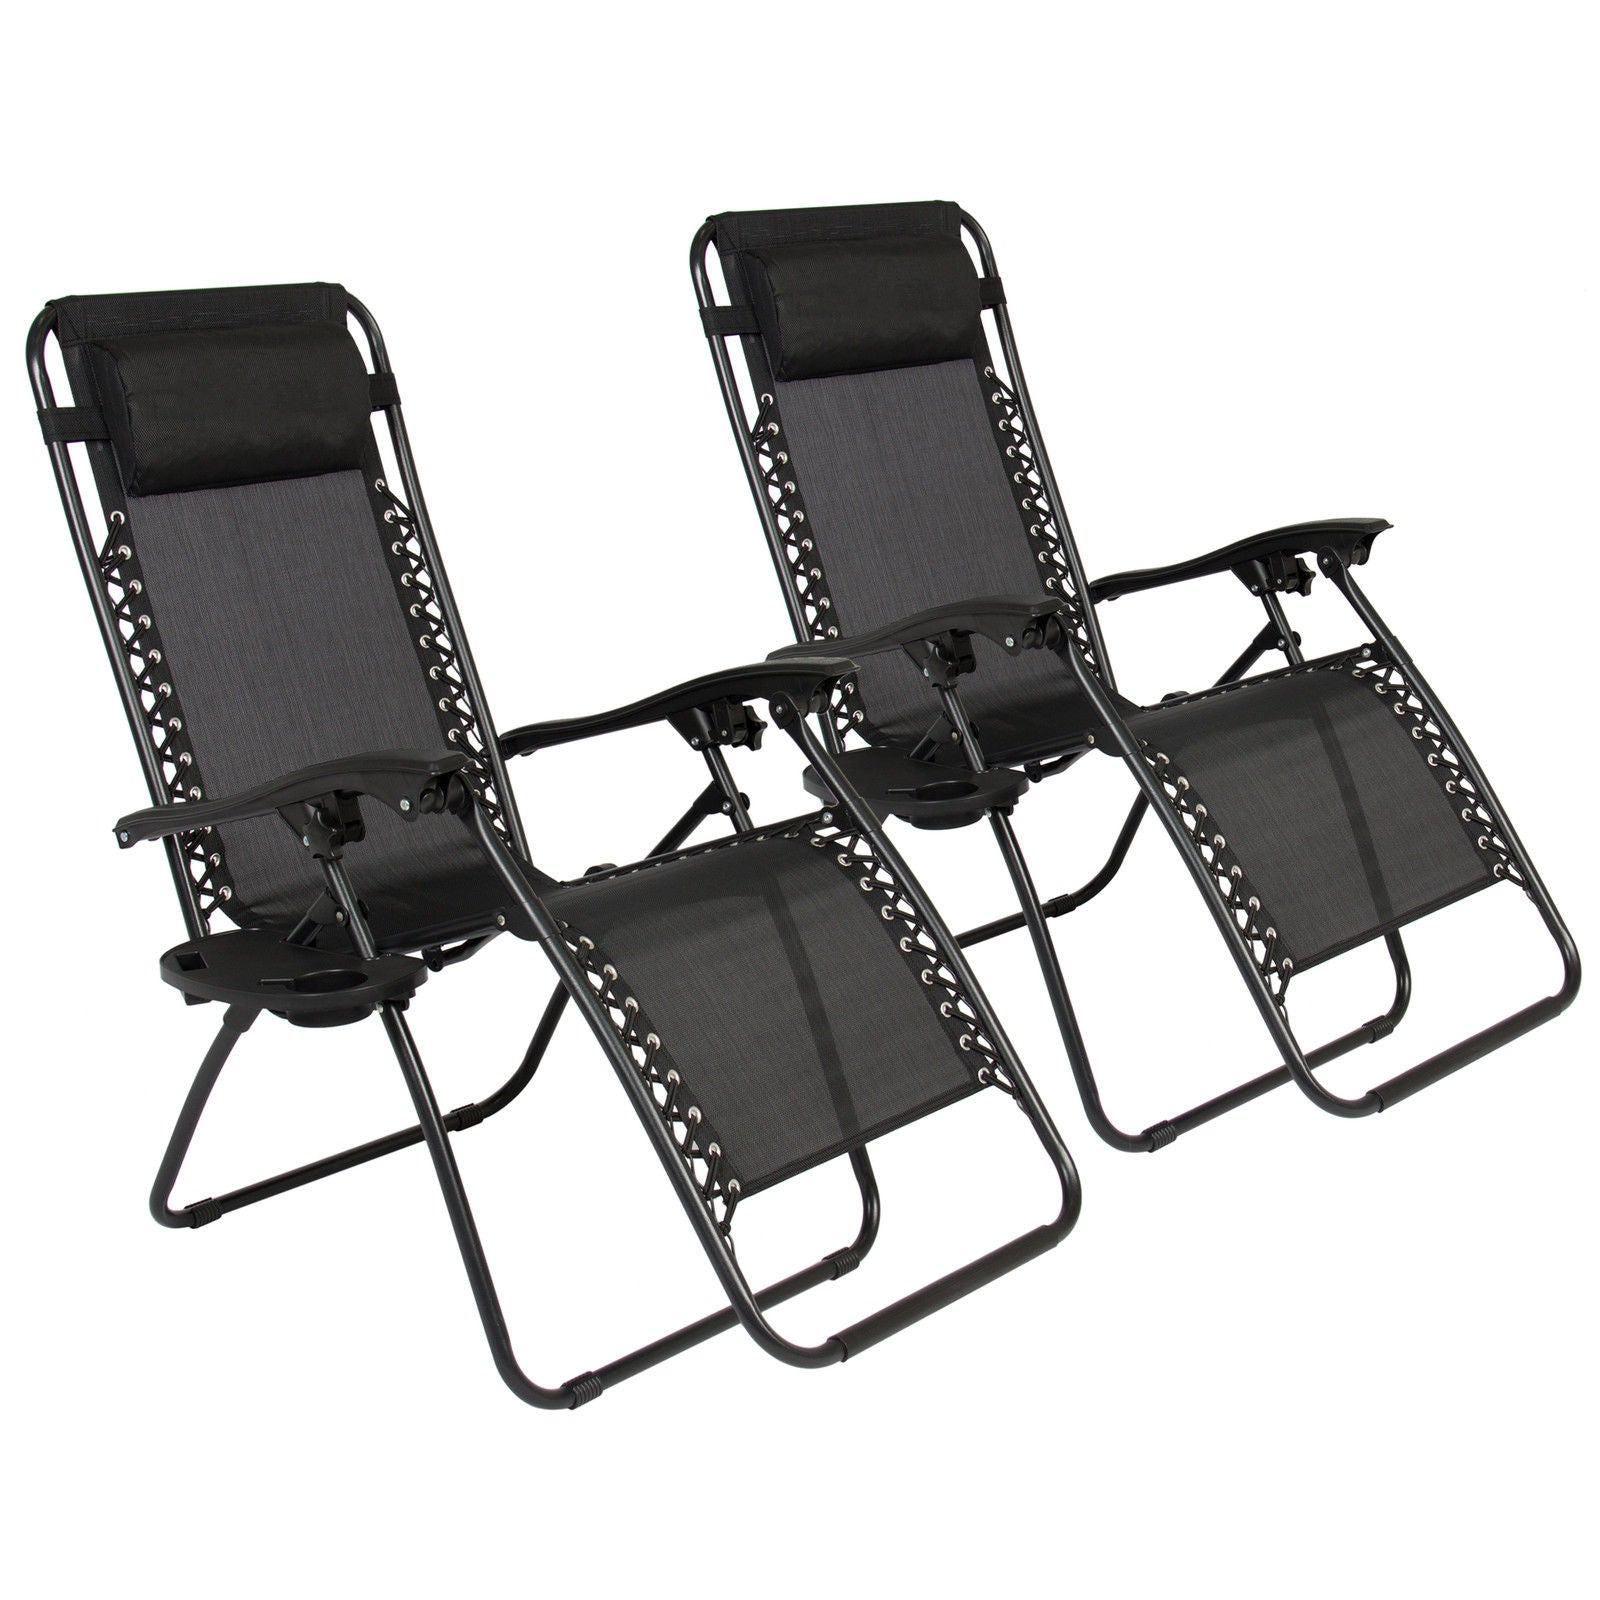 zero gravity chairs case of 2 black lounge patio outdoor yard beach new